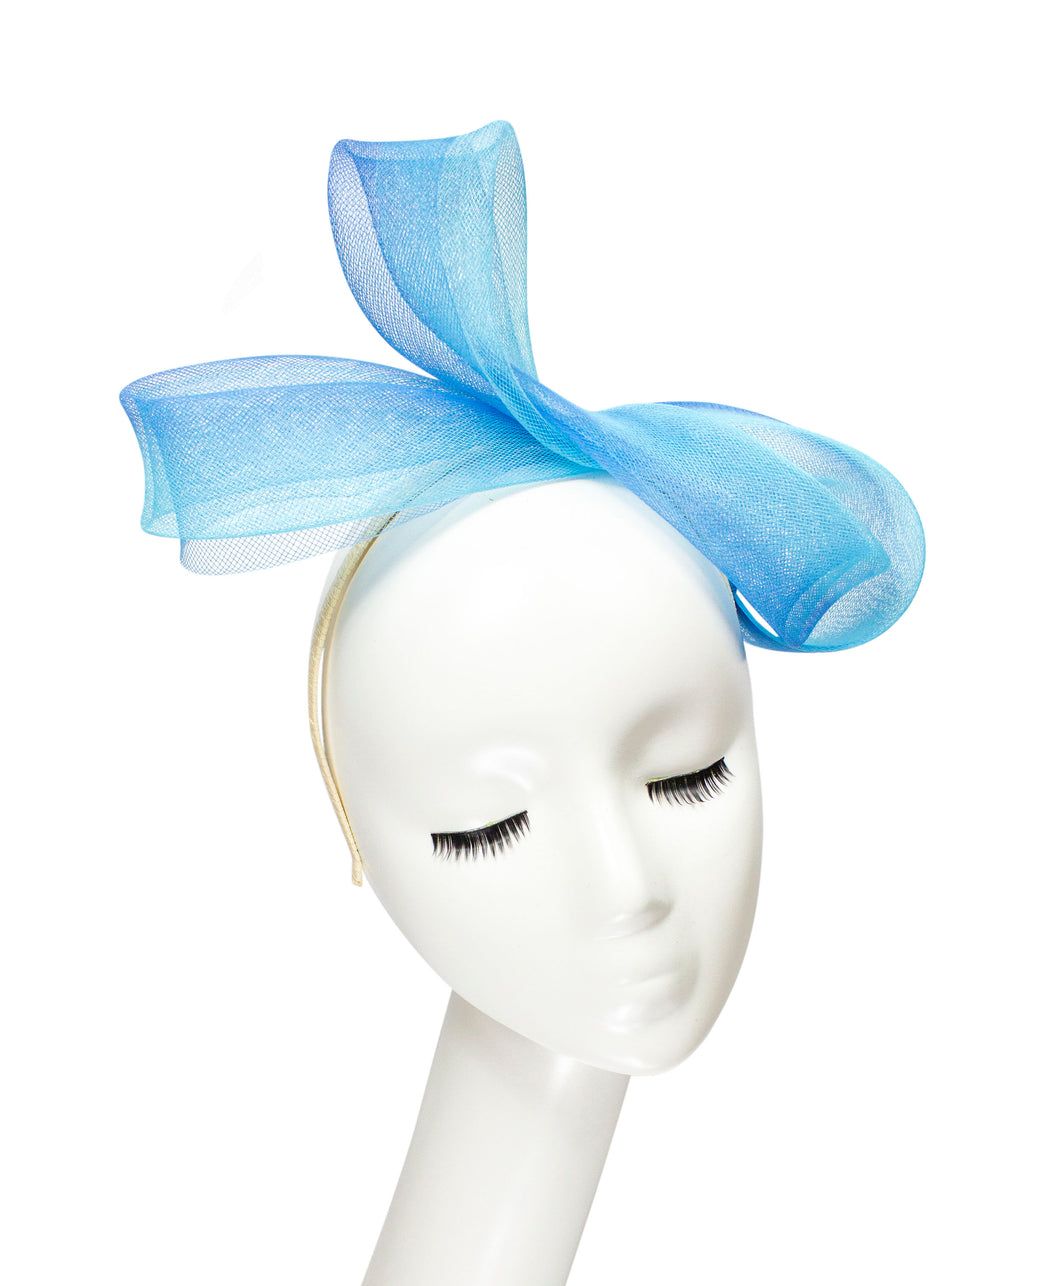 INFINITY - Looped Crinoline Bow Headband